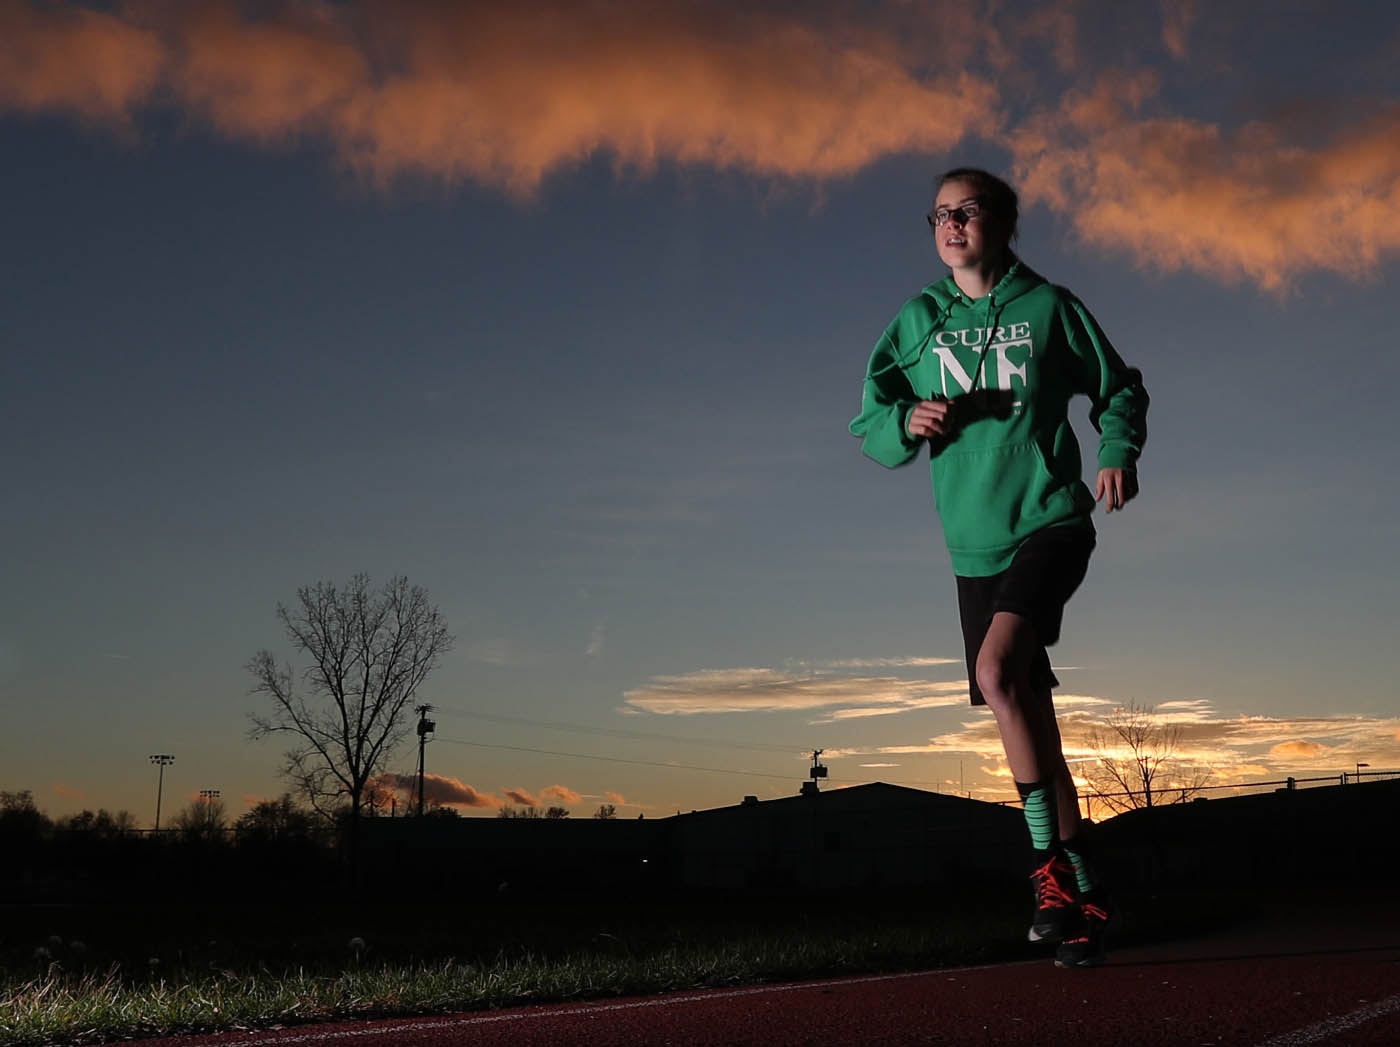 Leah Manth is a cross country/track runner with Neurofibromitosis. There is no cure for her condition. Photo taken at North Tonawanda high school in North Tonawanda on Wednesday, Nov. 9, 2016. The Seahawks won the game 31-25. (James P. McCoy/Buffalo News)